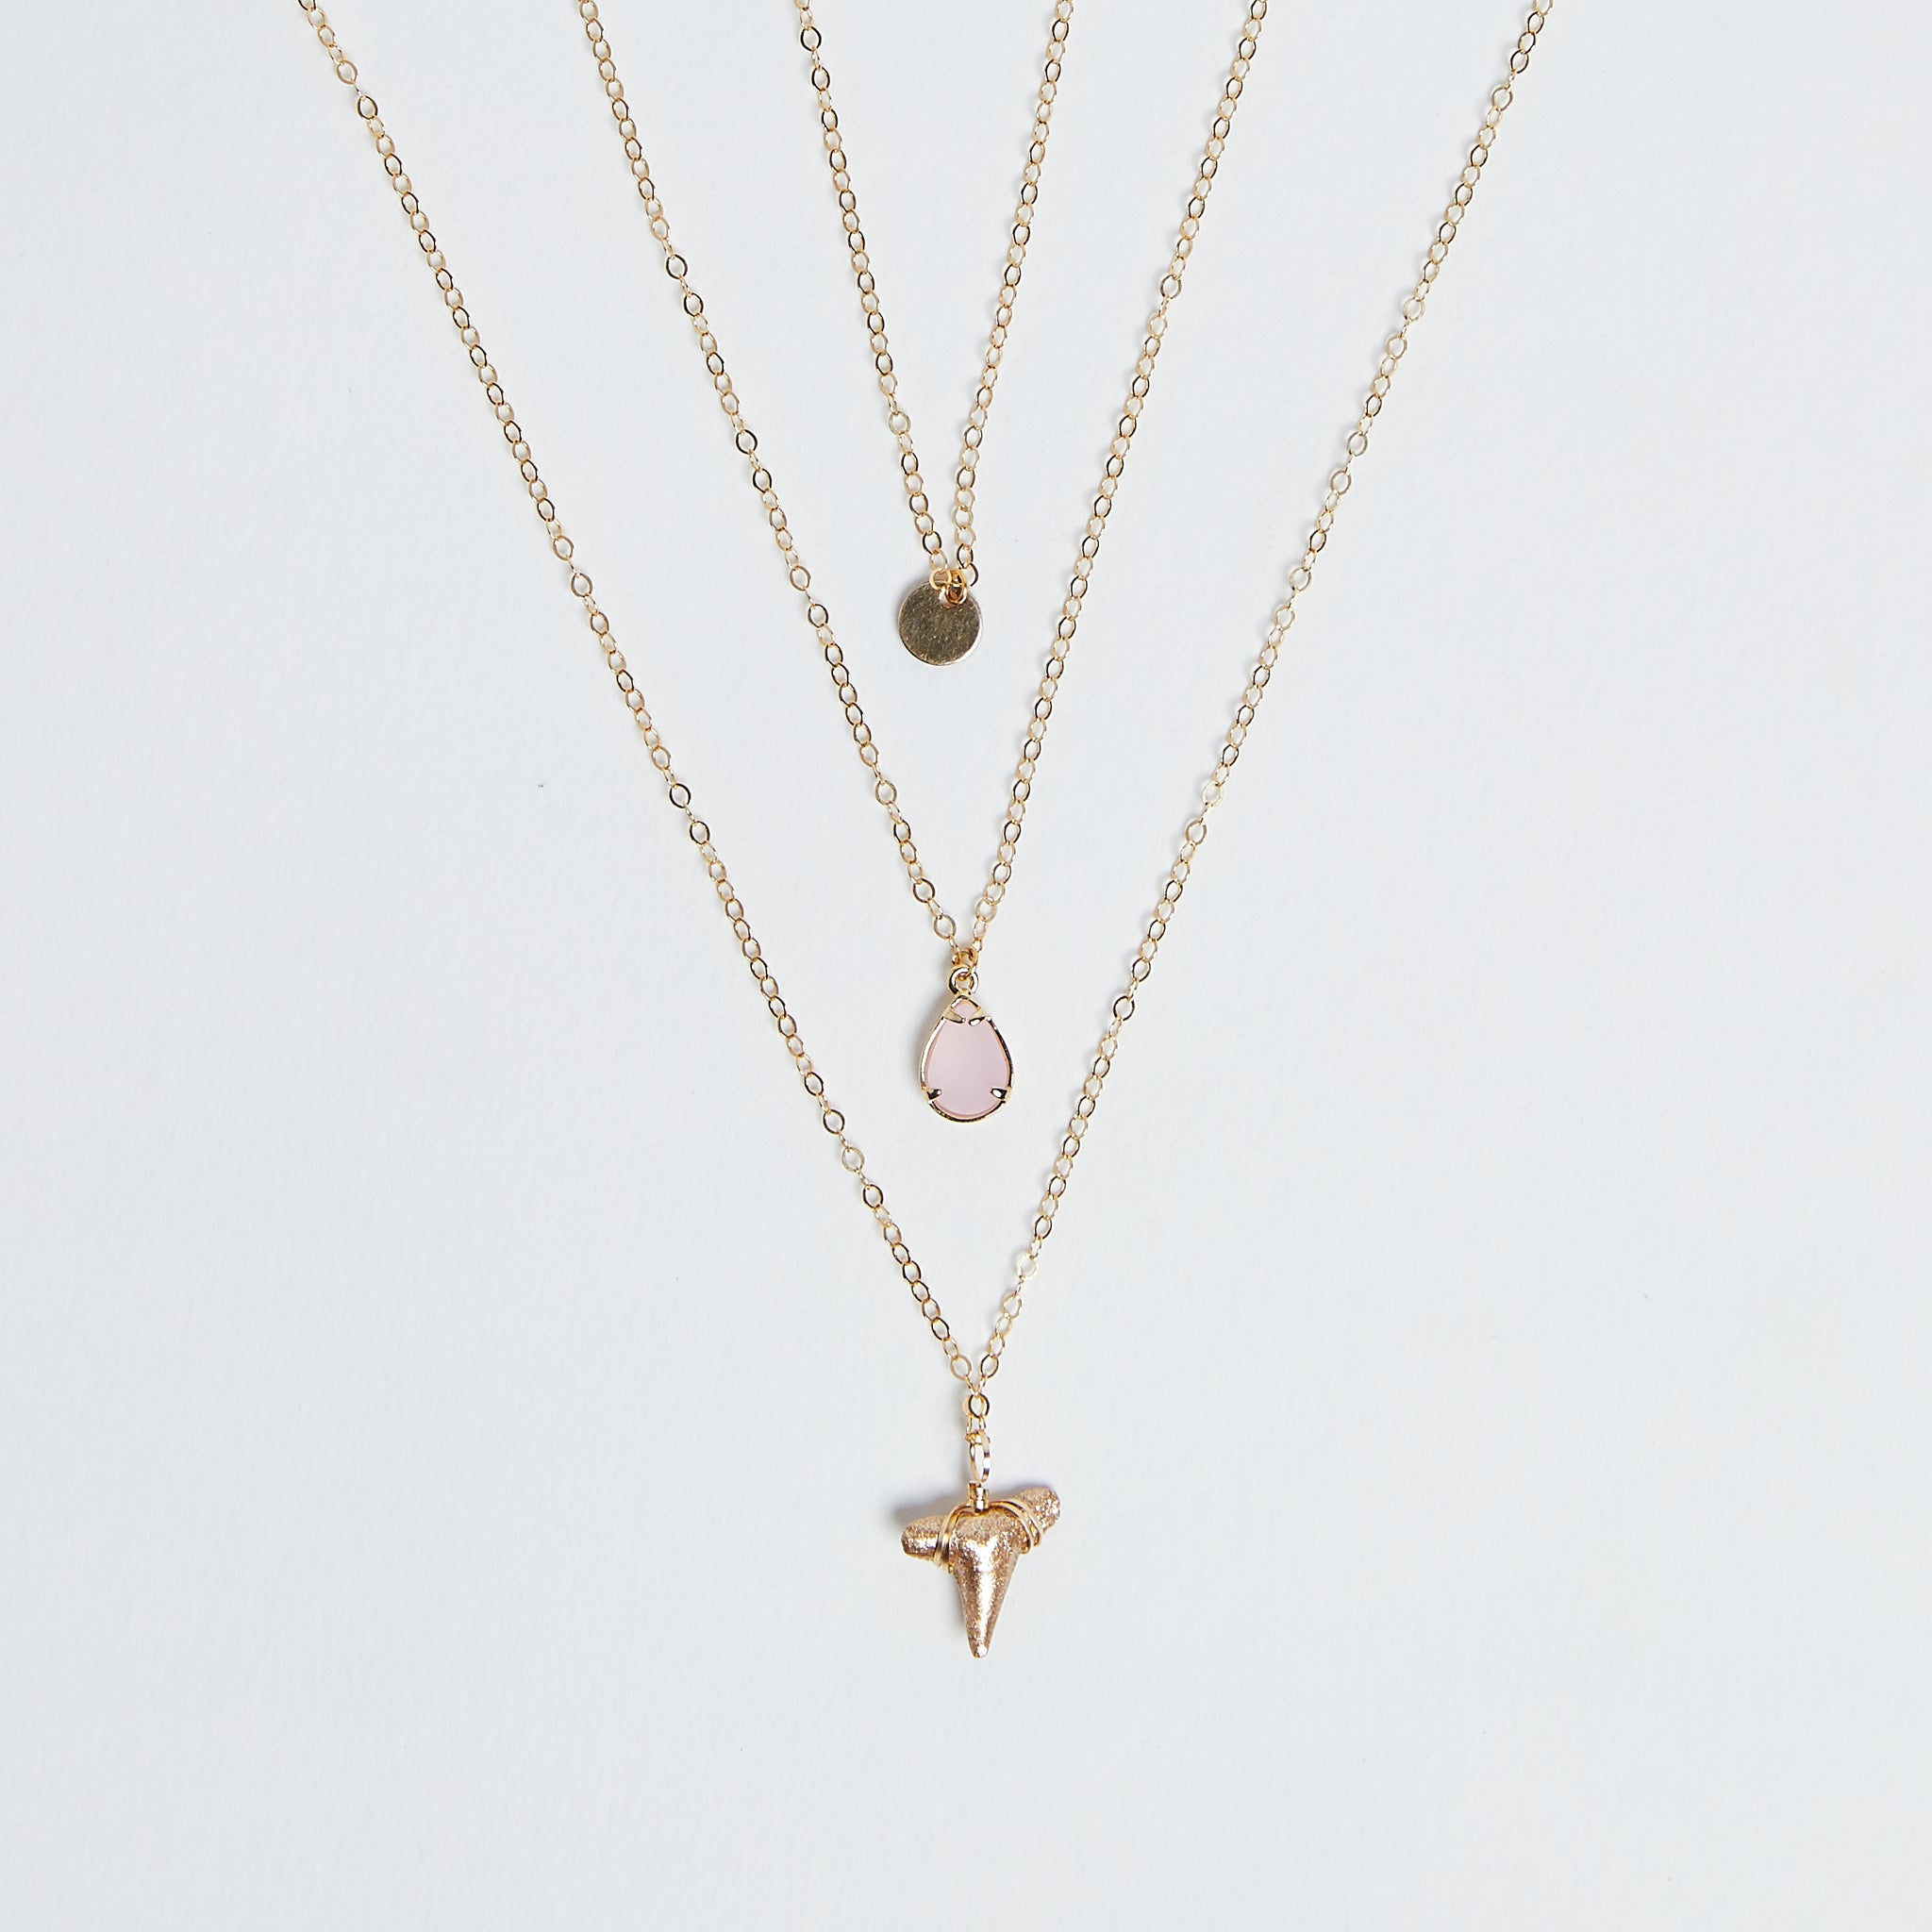 East Coast Vibes - Foxy Fossils 3 layer gold shark tooth necklace with light rose pink quartz crystal charm